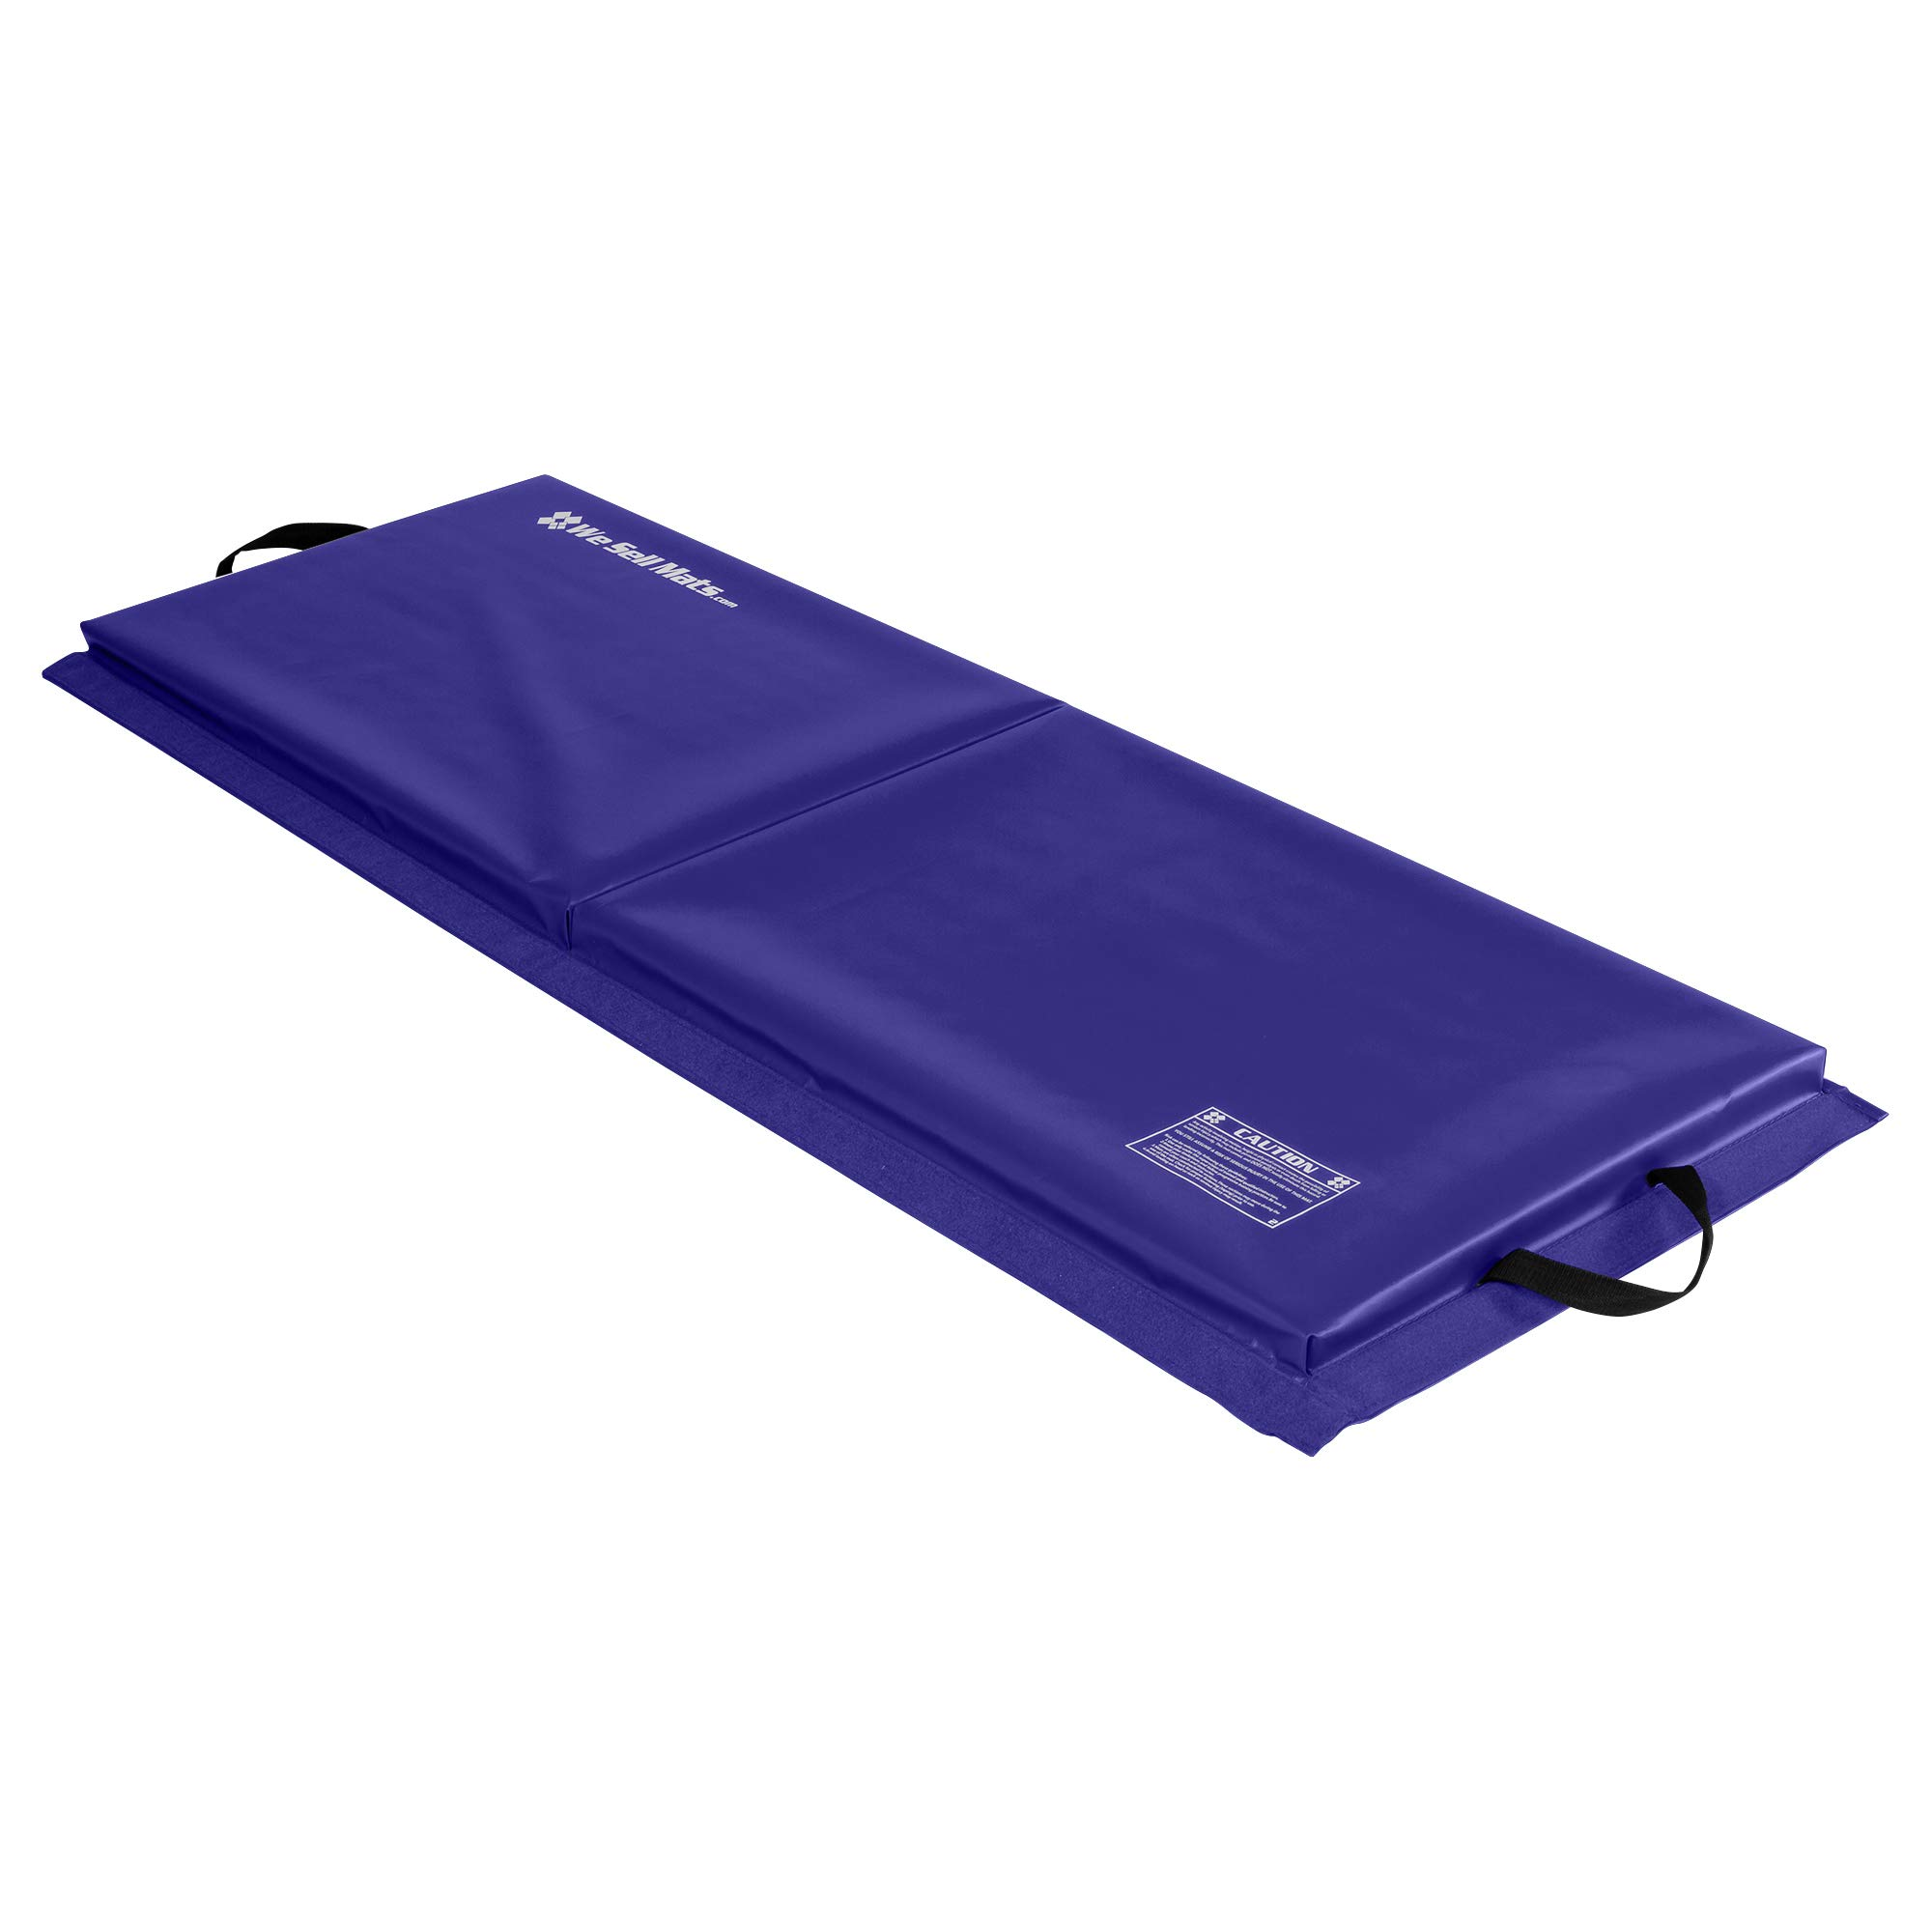 We Sell Mats 2 ft x 6 ft x 2 in Fitness & Exercise Mat, Portable with Hook & Loop Fasteners, Lightweight and Folds for Carrying